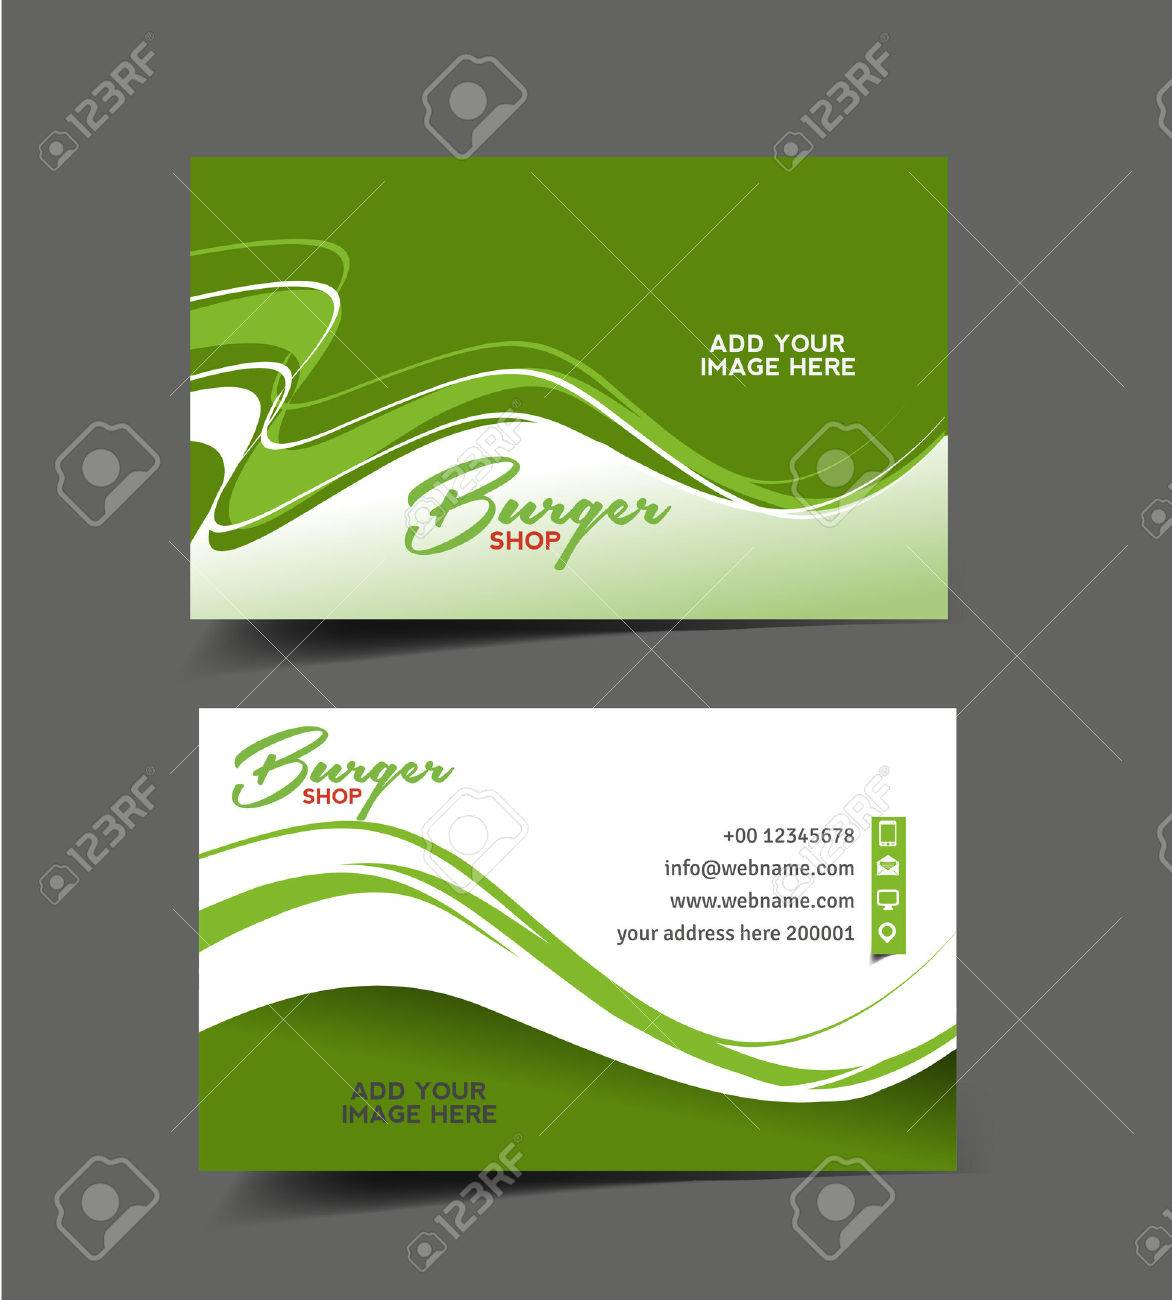 Restaurant Business Card Vector Design Royalty Free Cliparts ...